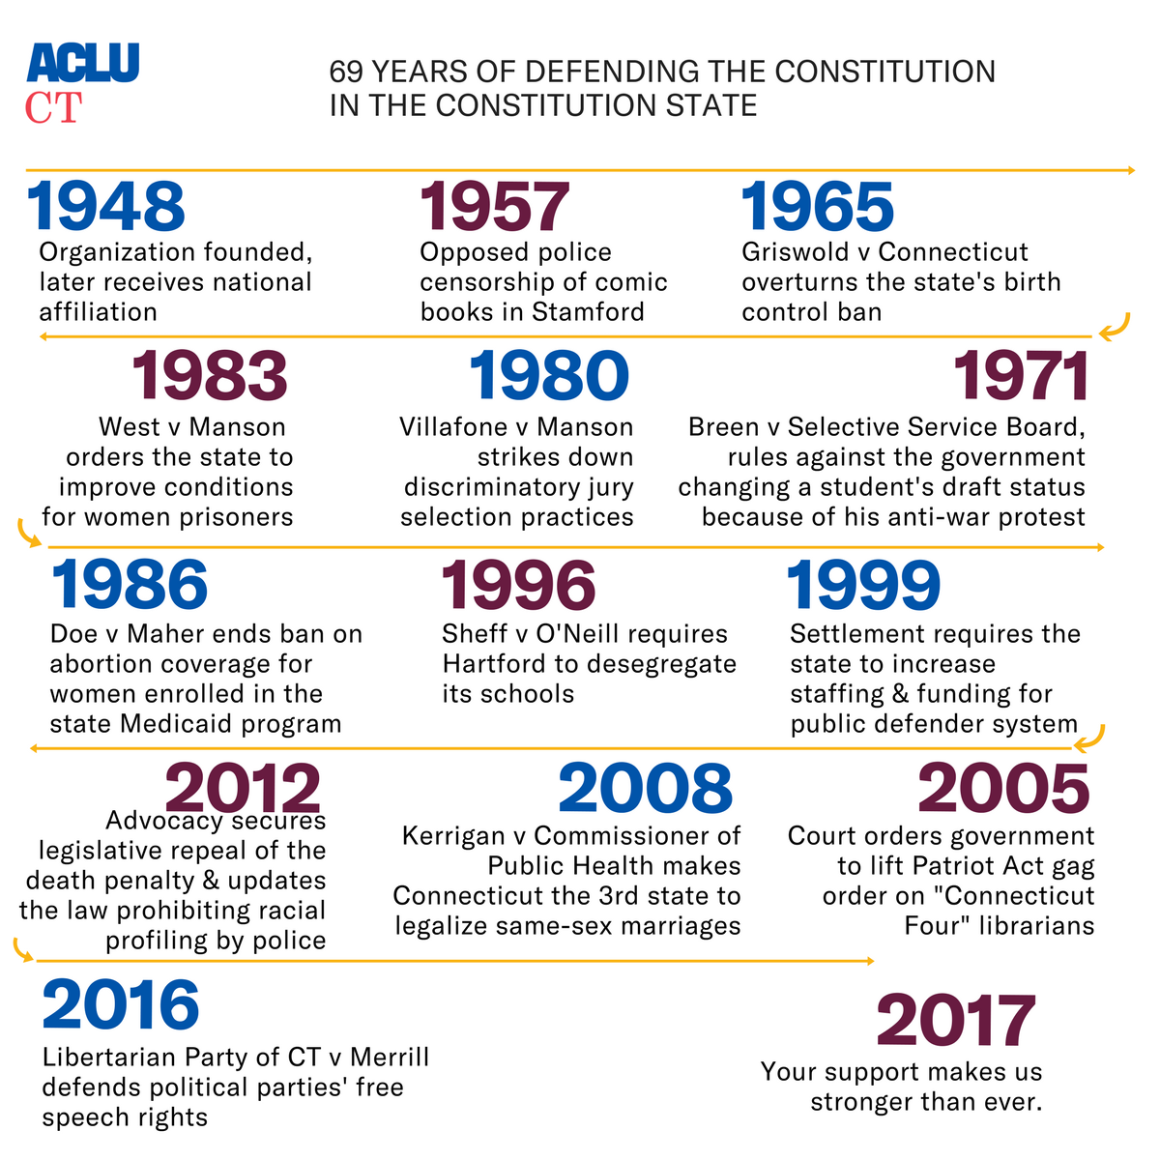 ACLU of Connecticut / CT court cases and highlights 1948 -2017, including Griswold v Connecticut, Breen v Selective Service Board, Doe v Maher, Karrigan v Commissioner of Public Health